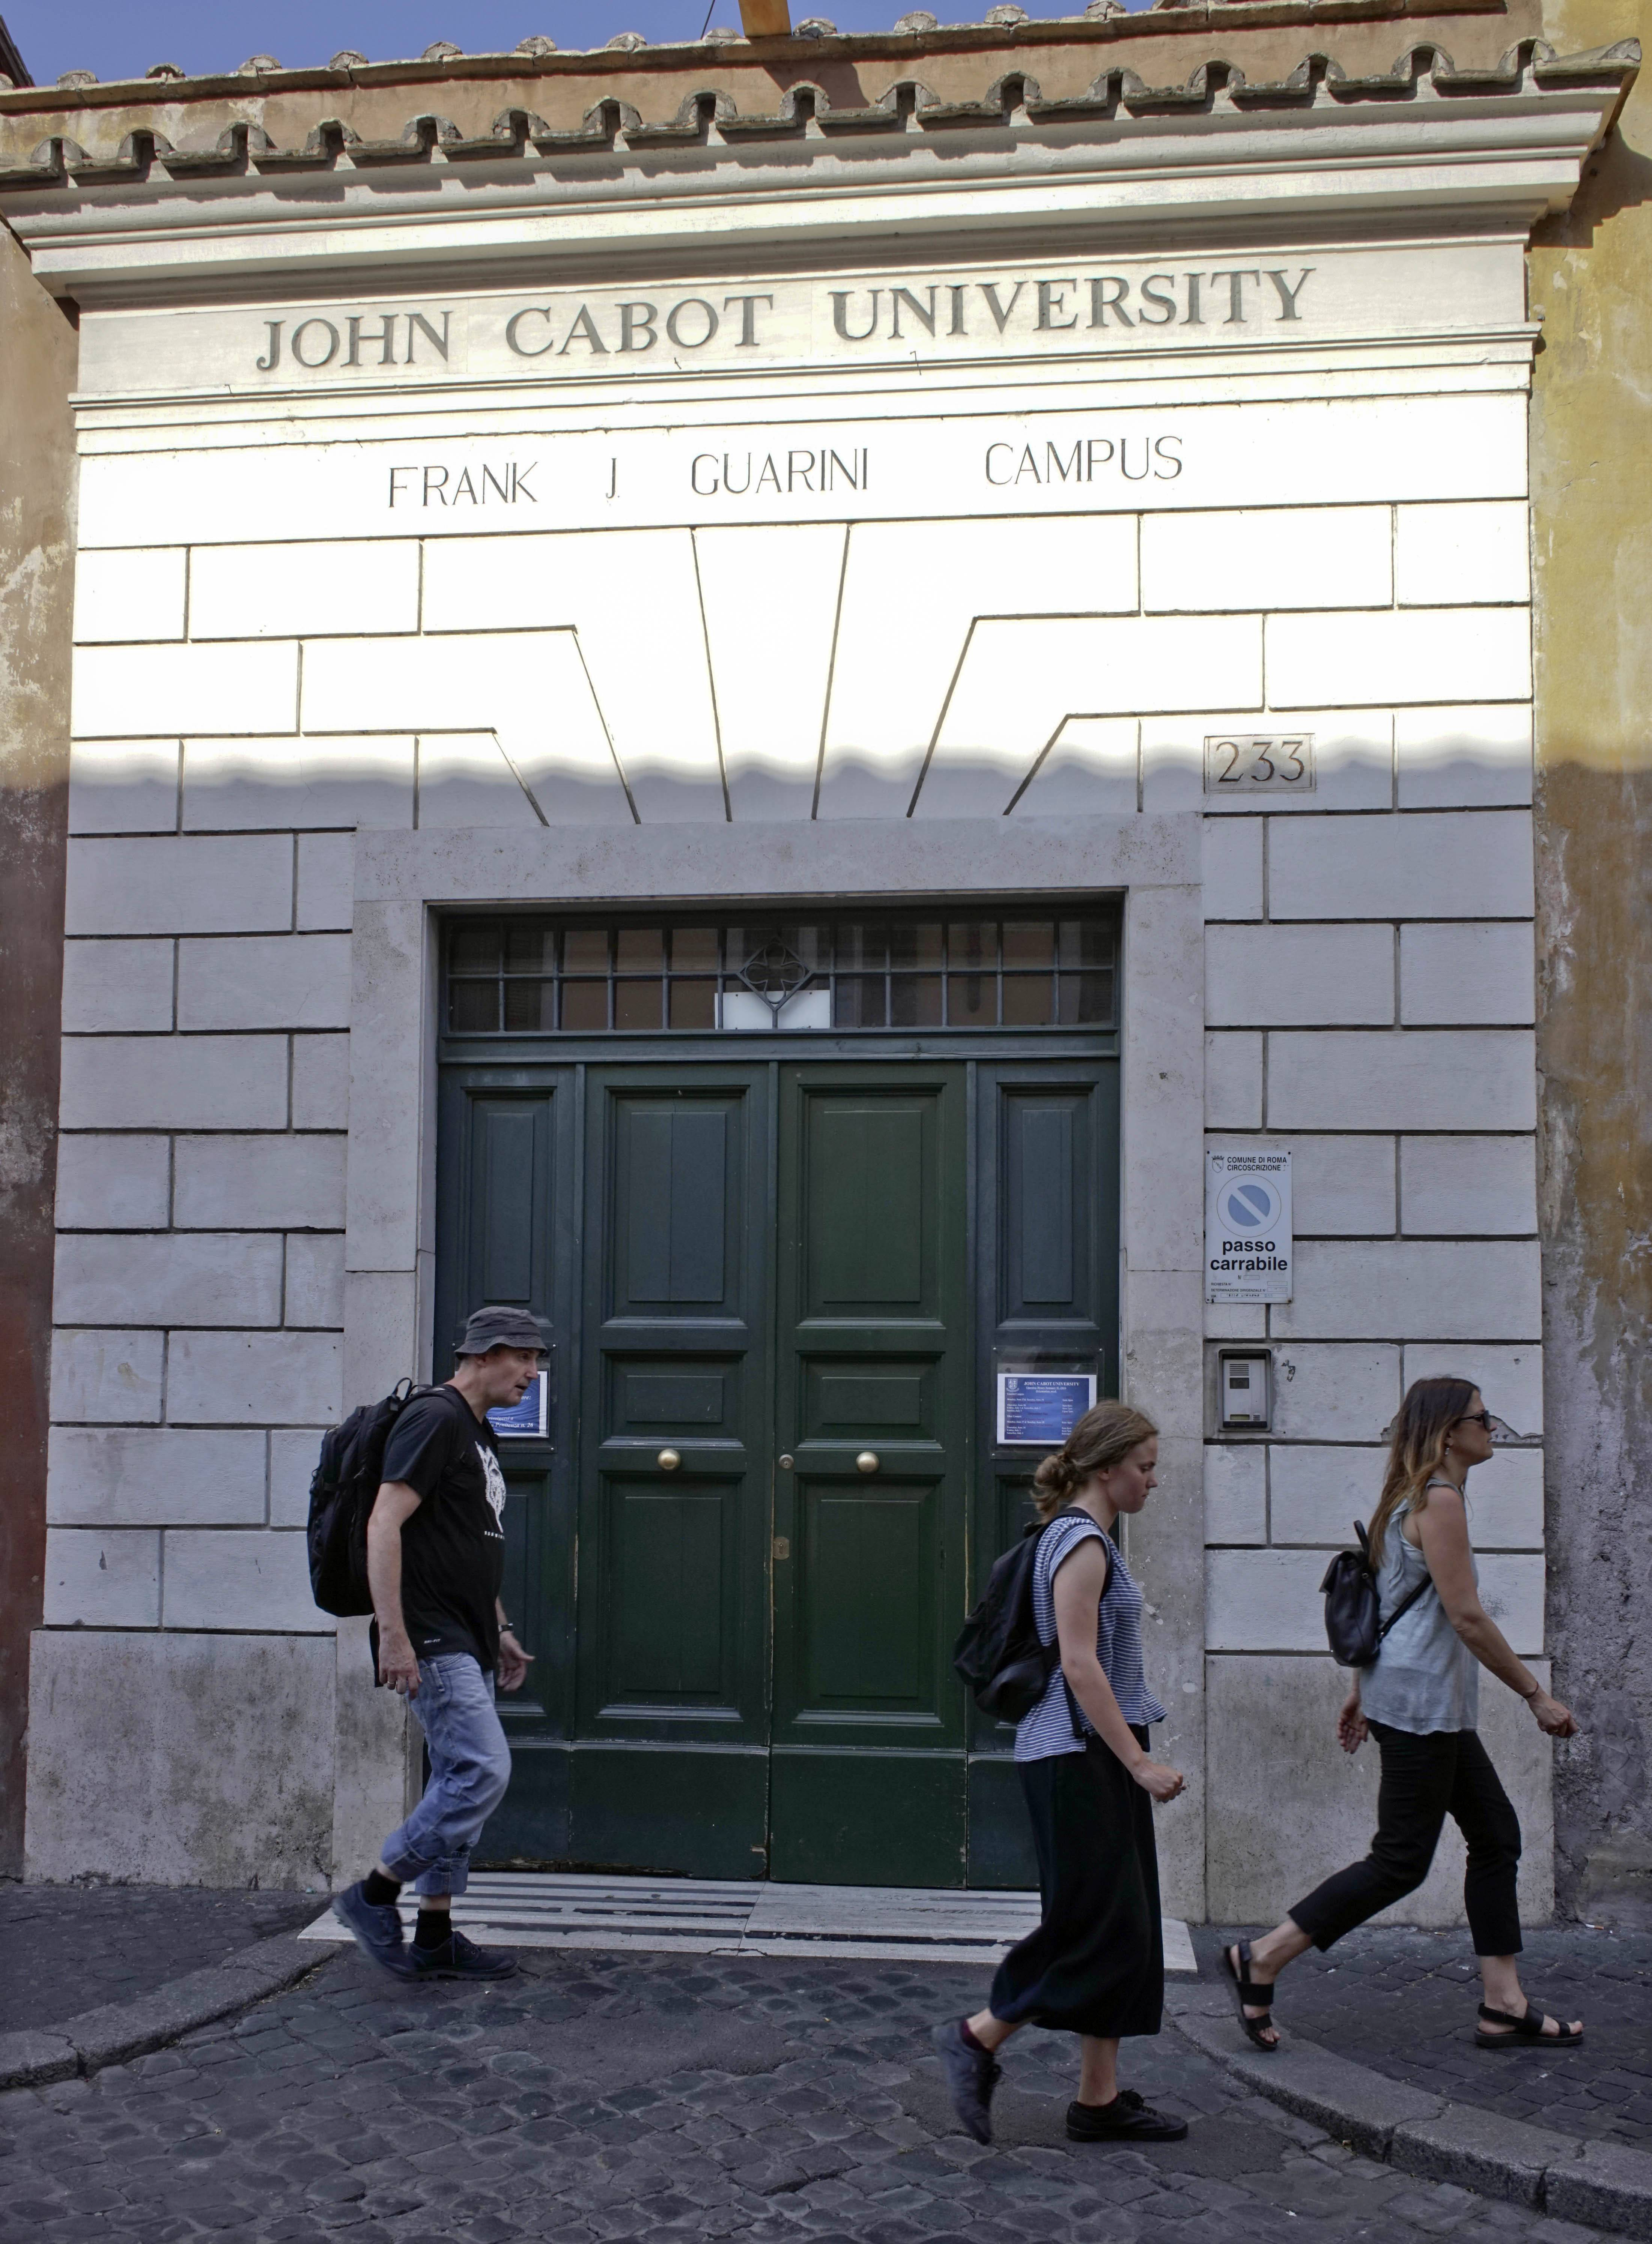 People walk by the entrance of the John Cabot University in Rome. Attending college overseas might sound extravagant, but it can be more affordable than pursuing a bachelor's degree in the U.S. Before buying a plane ticket, students should compare their options, research the costs of living internationally and understand how financial aid works abroad.